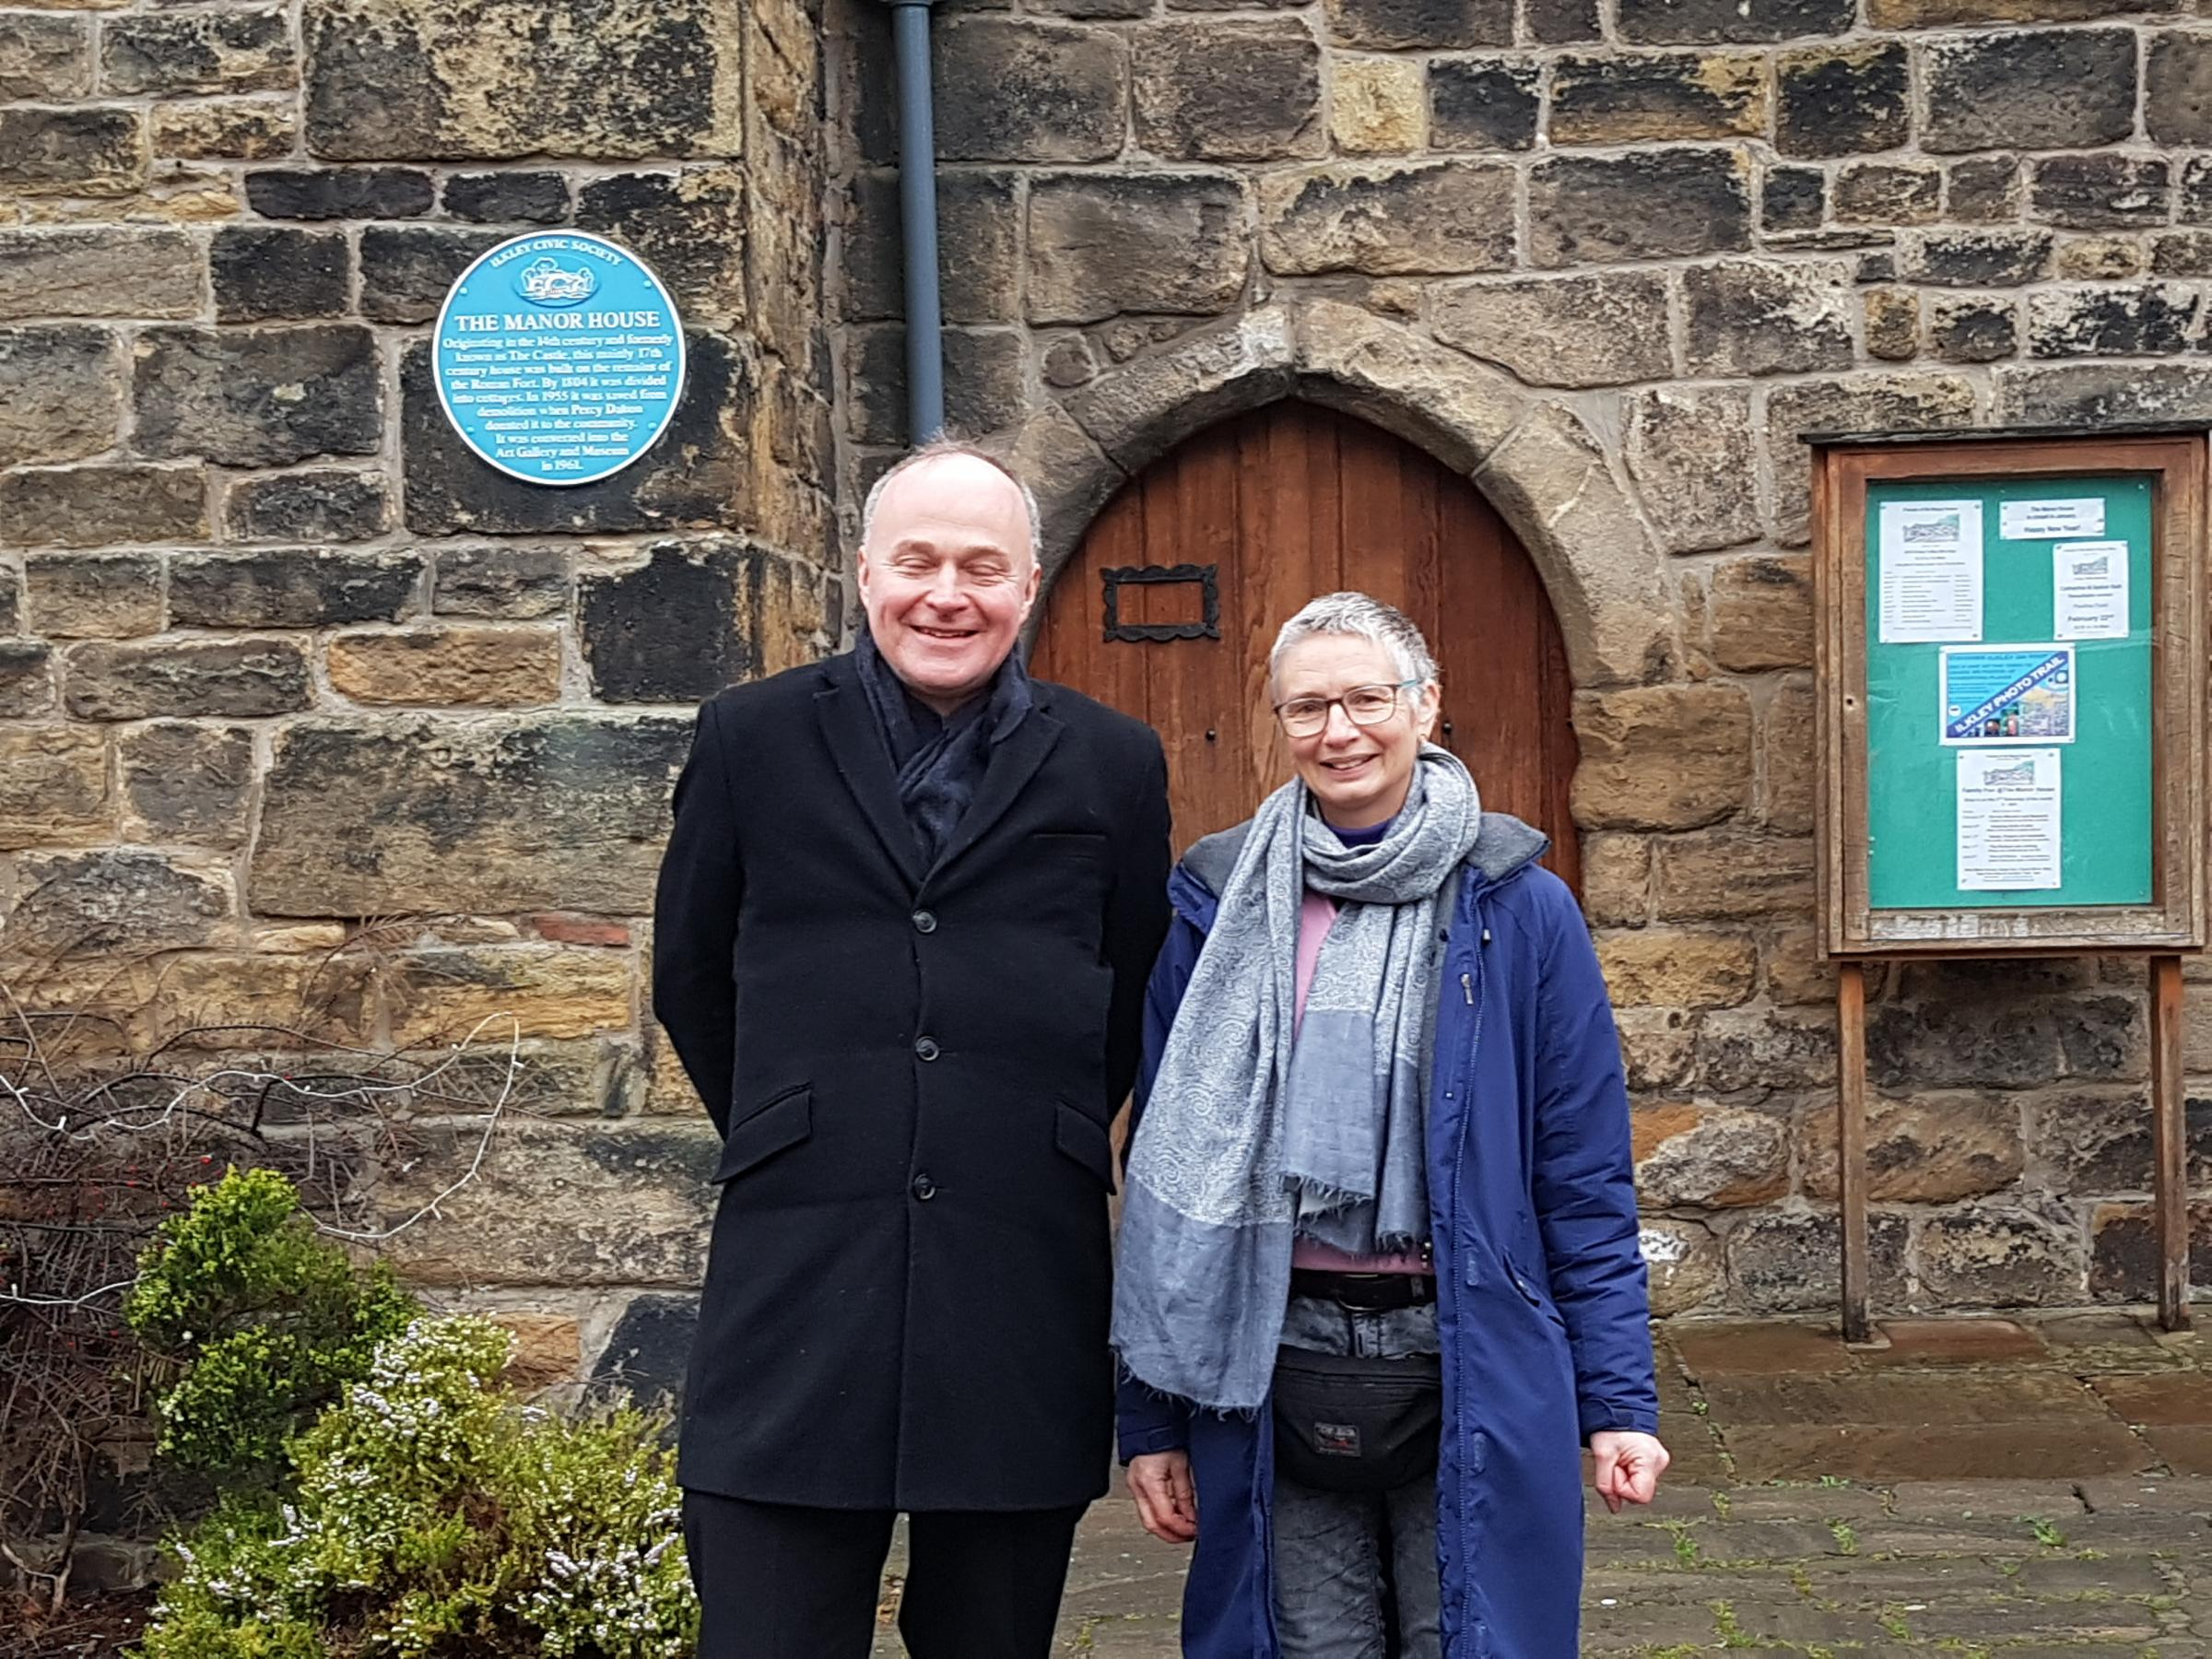 Ilkley's Labour MP John Grogan with Kath Steward who will contest the Ilkley seat for Labour in the May Bradford Council elections